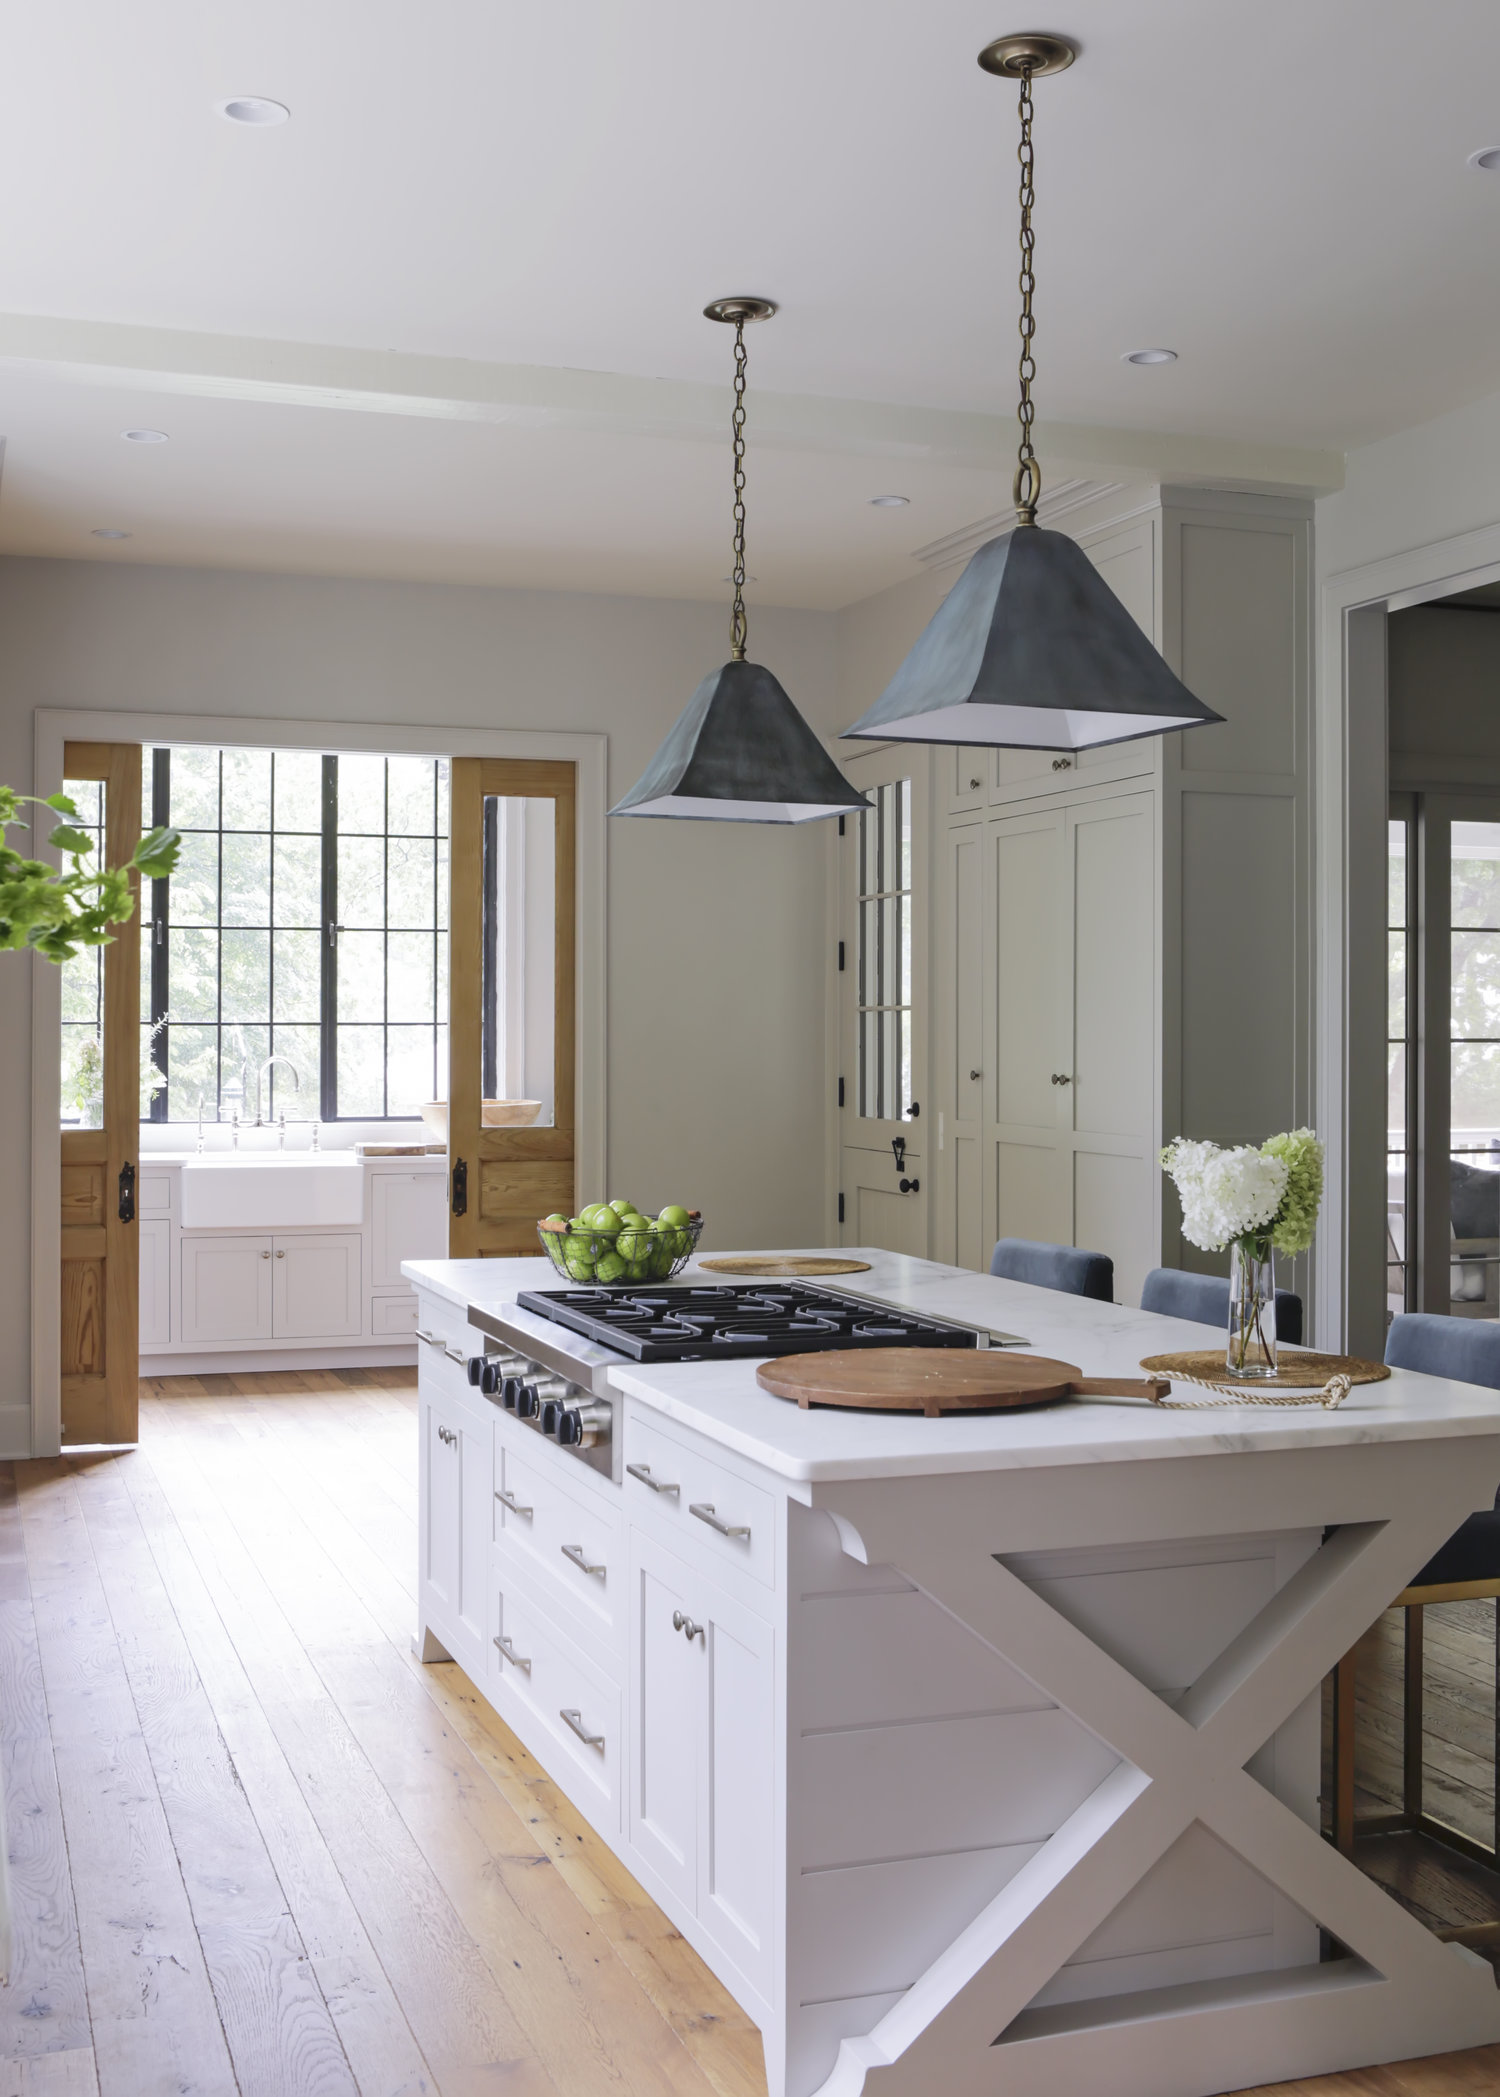 Kitchen Design Trends In 2018 Exciting Kitchen Design Trends For 2018 Lindsay Hill Interiors